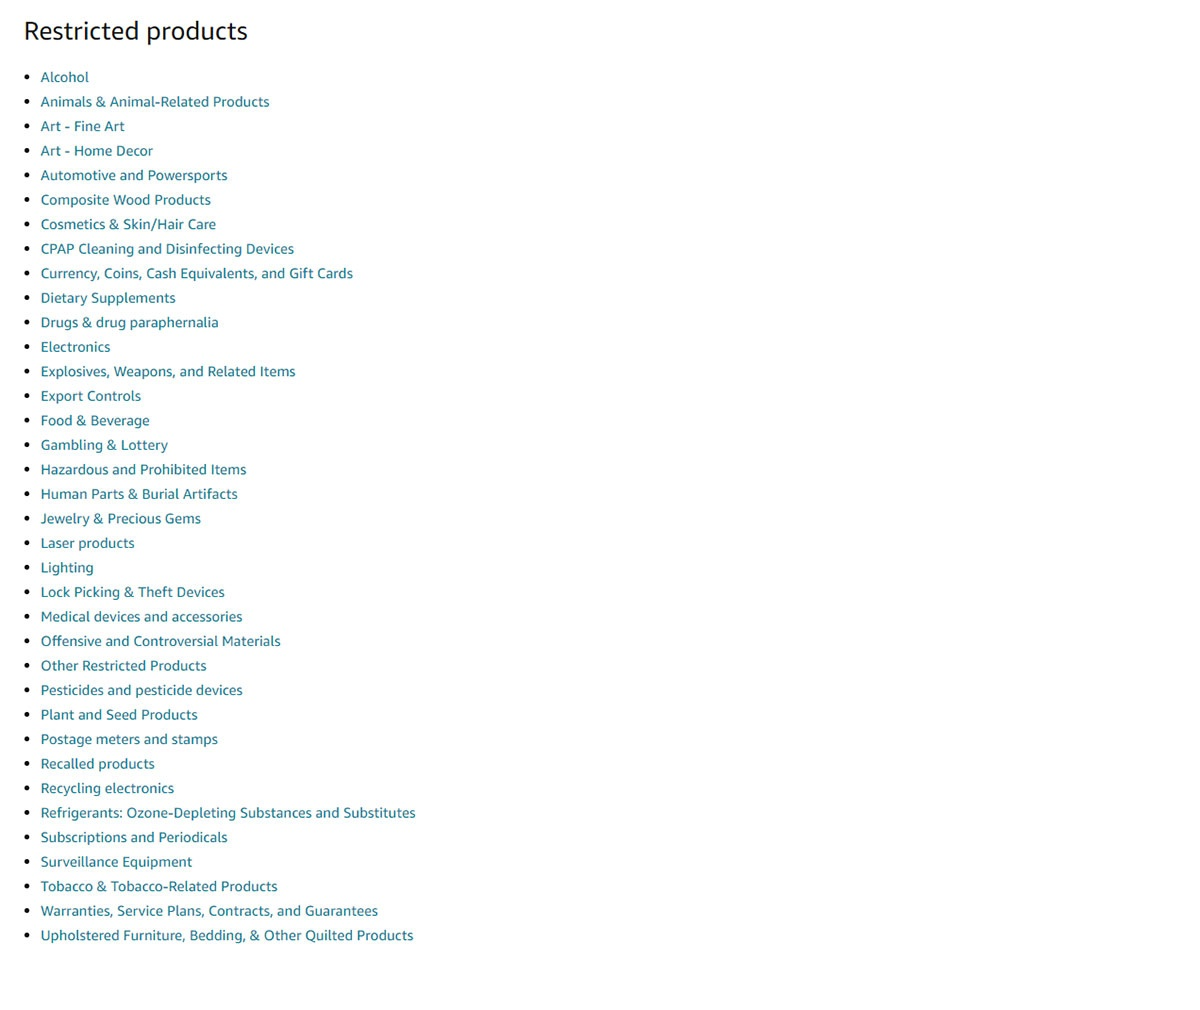 Restricted-products